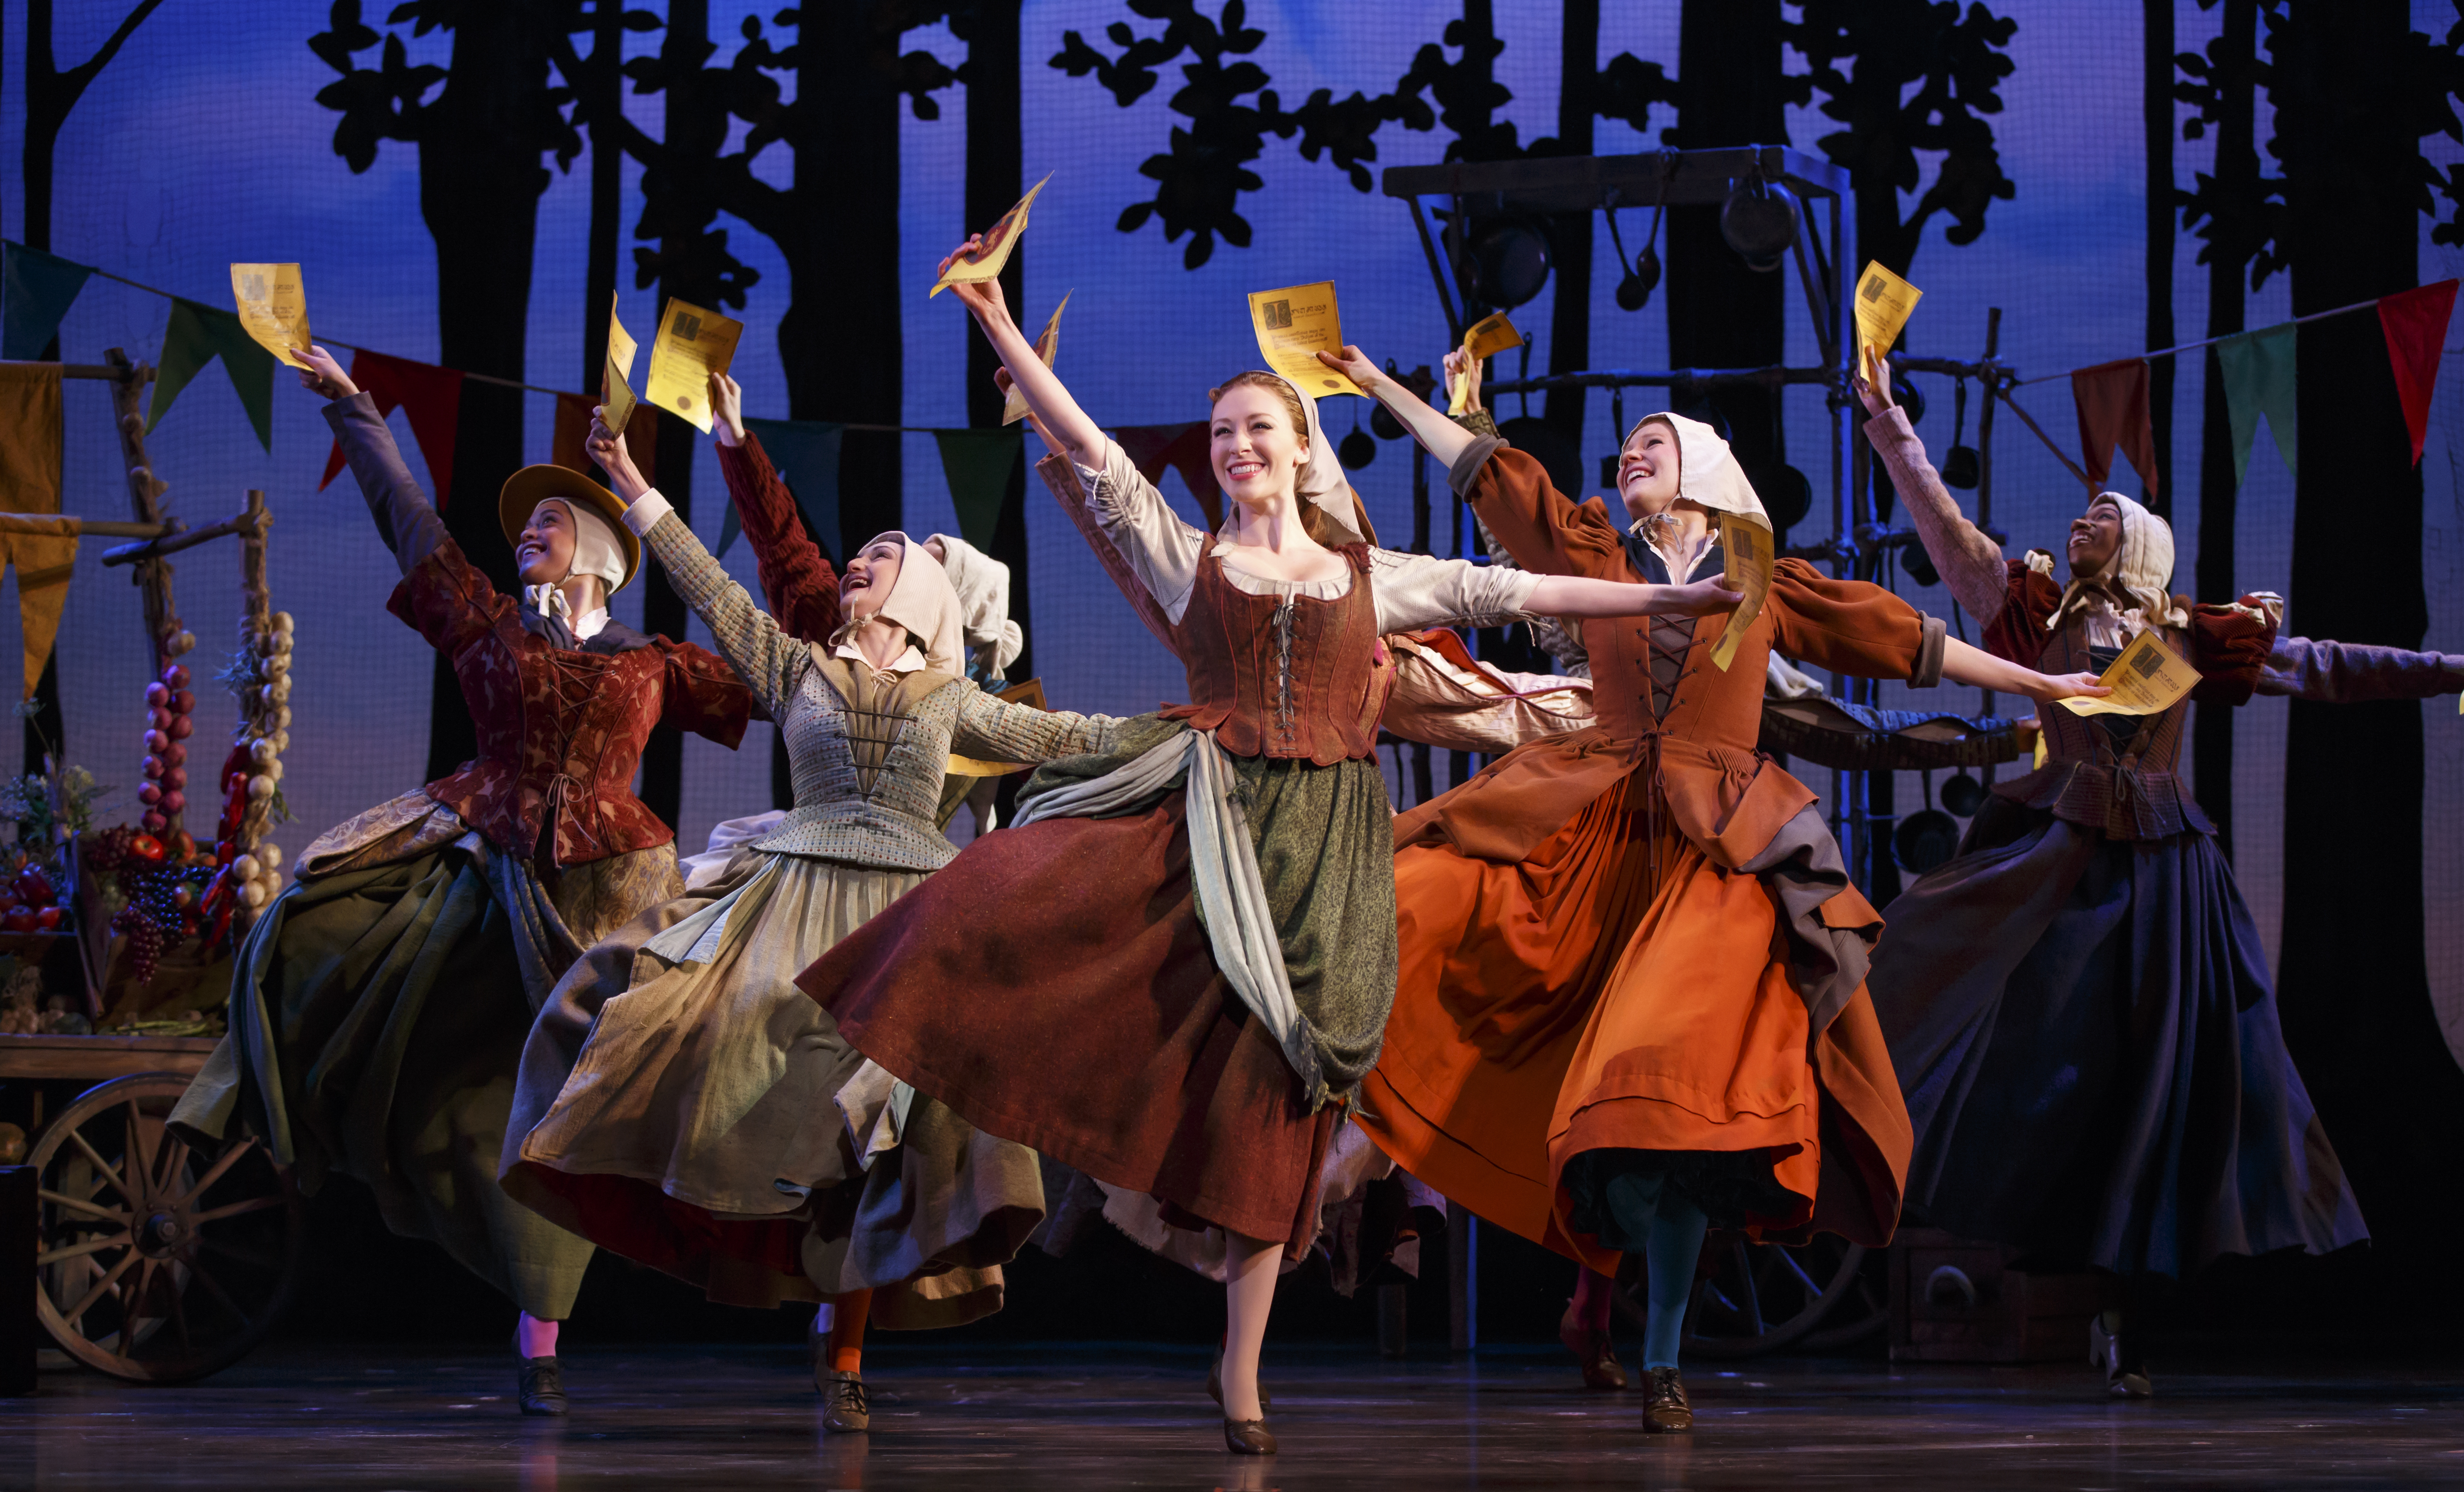 'Cinderella' star goes behind the glass slipper at National Theatre